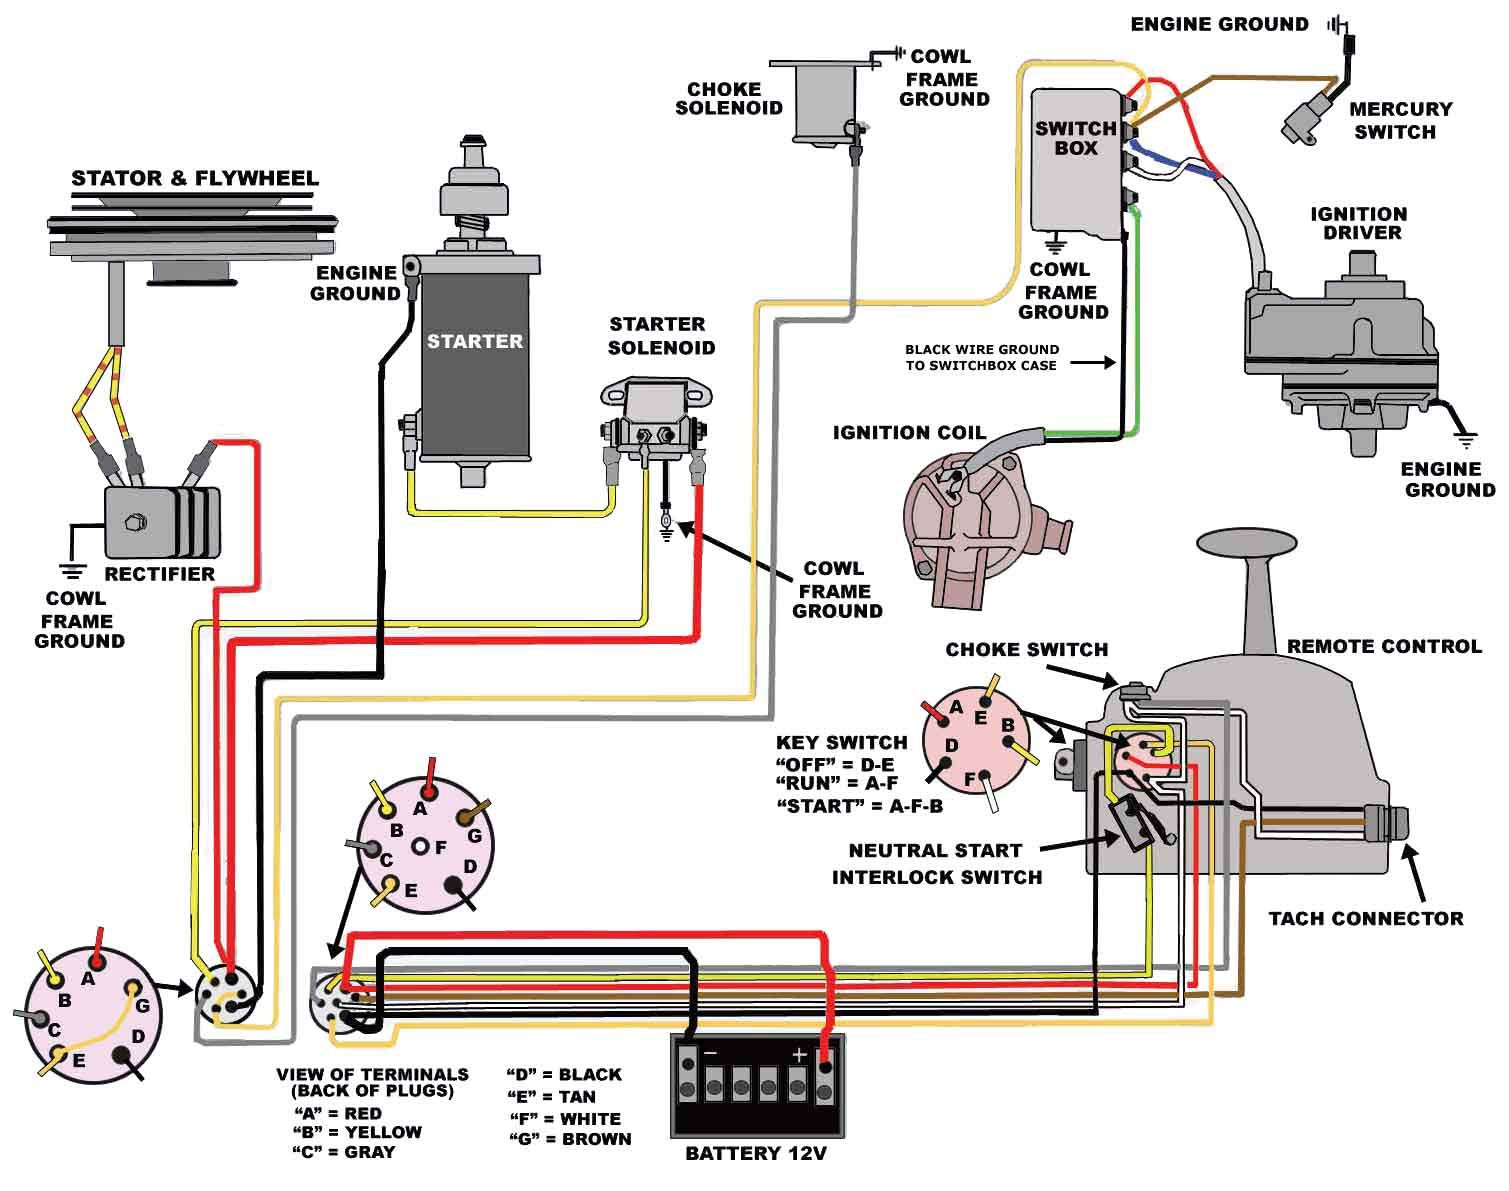 650 Series Wiring Diagram Library Mercury Outboard Harness Starting Know About U2022 Diesel Generator Schlage